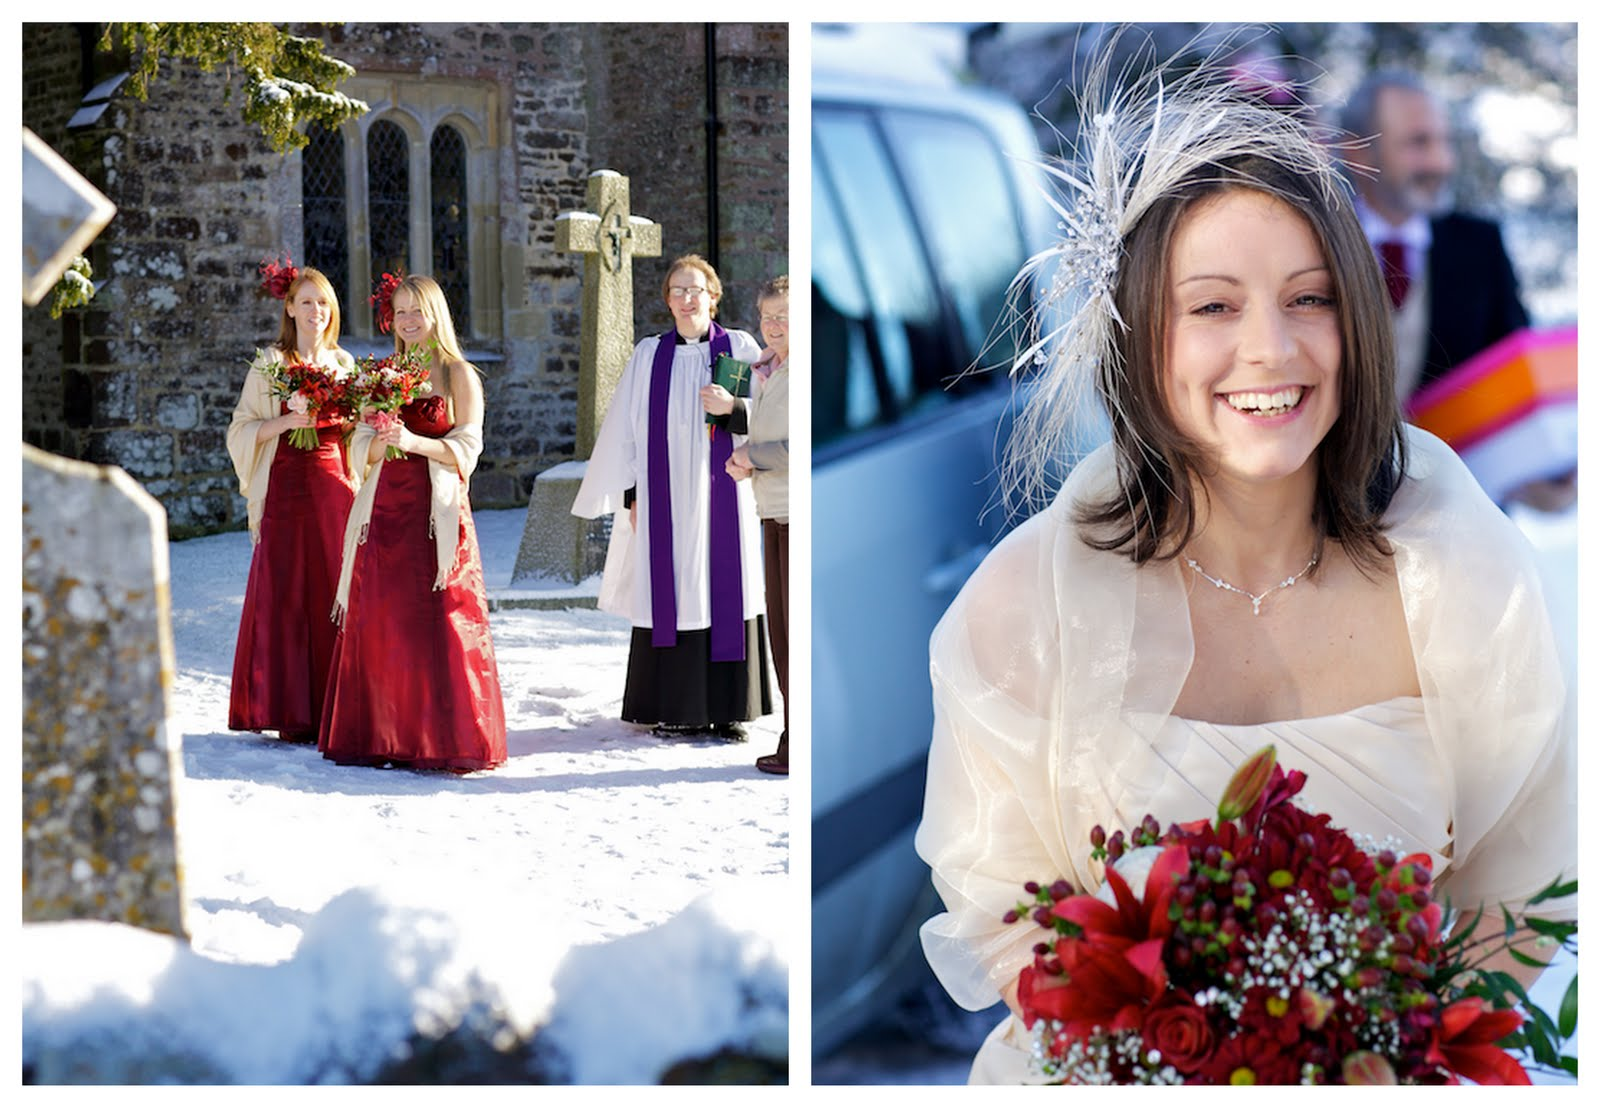 If You Enjoyed This Post Why Not Sign Up For Our Free Newsletter And Click More Winter Wedding Ideas Before The Day Best Uk Blog